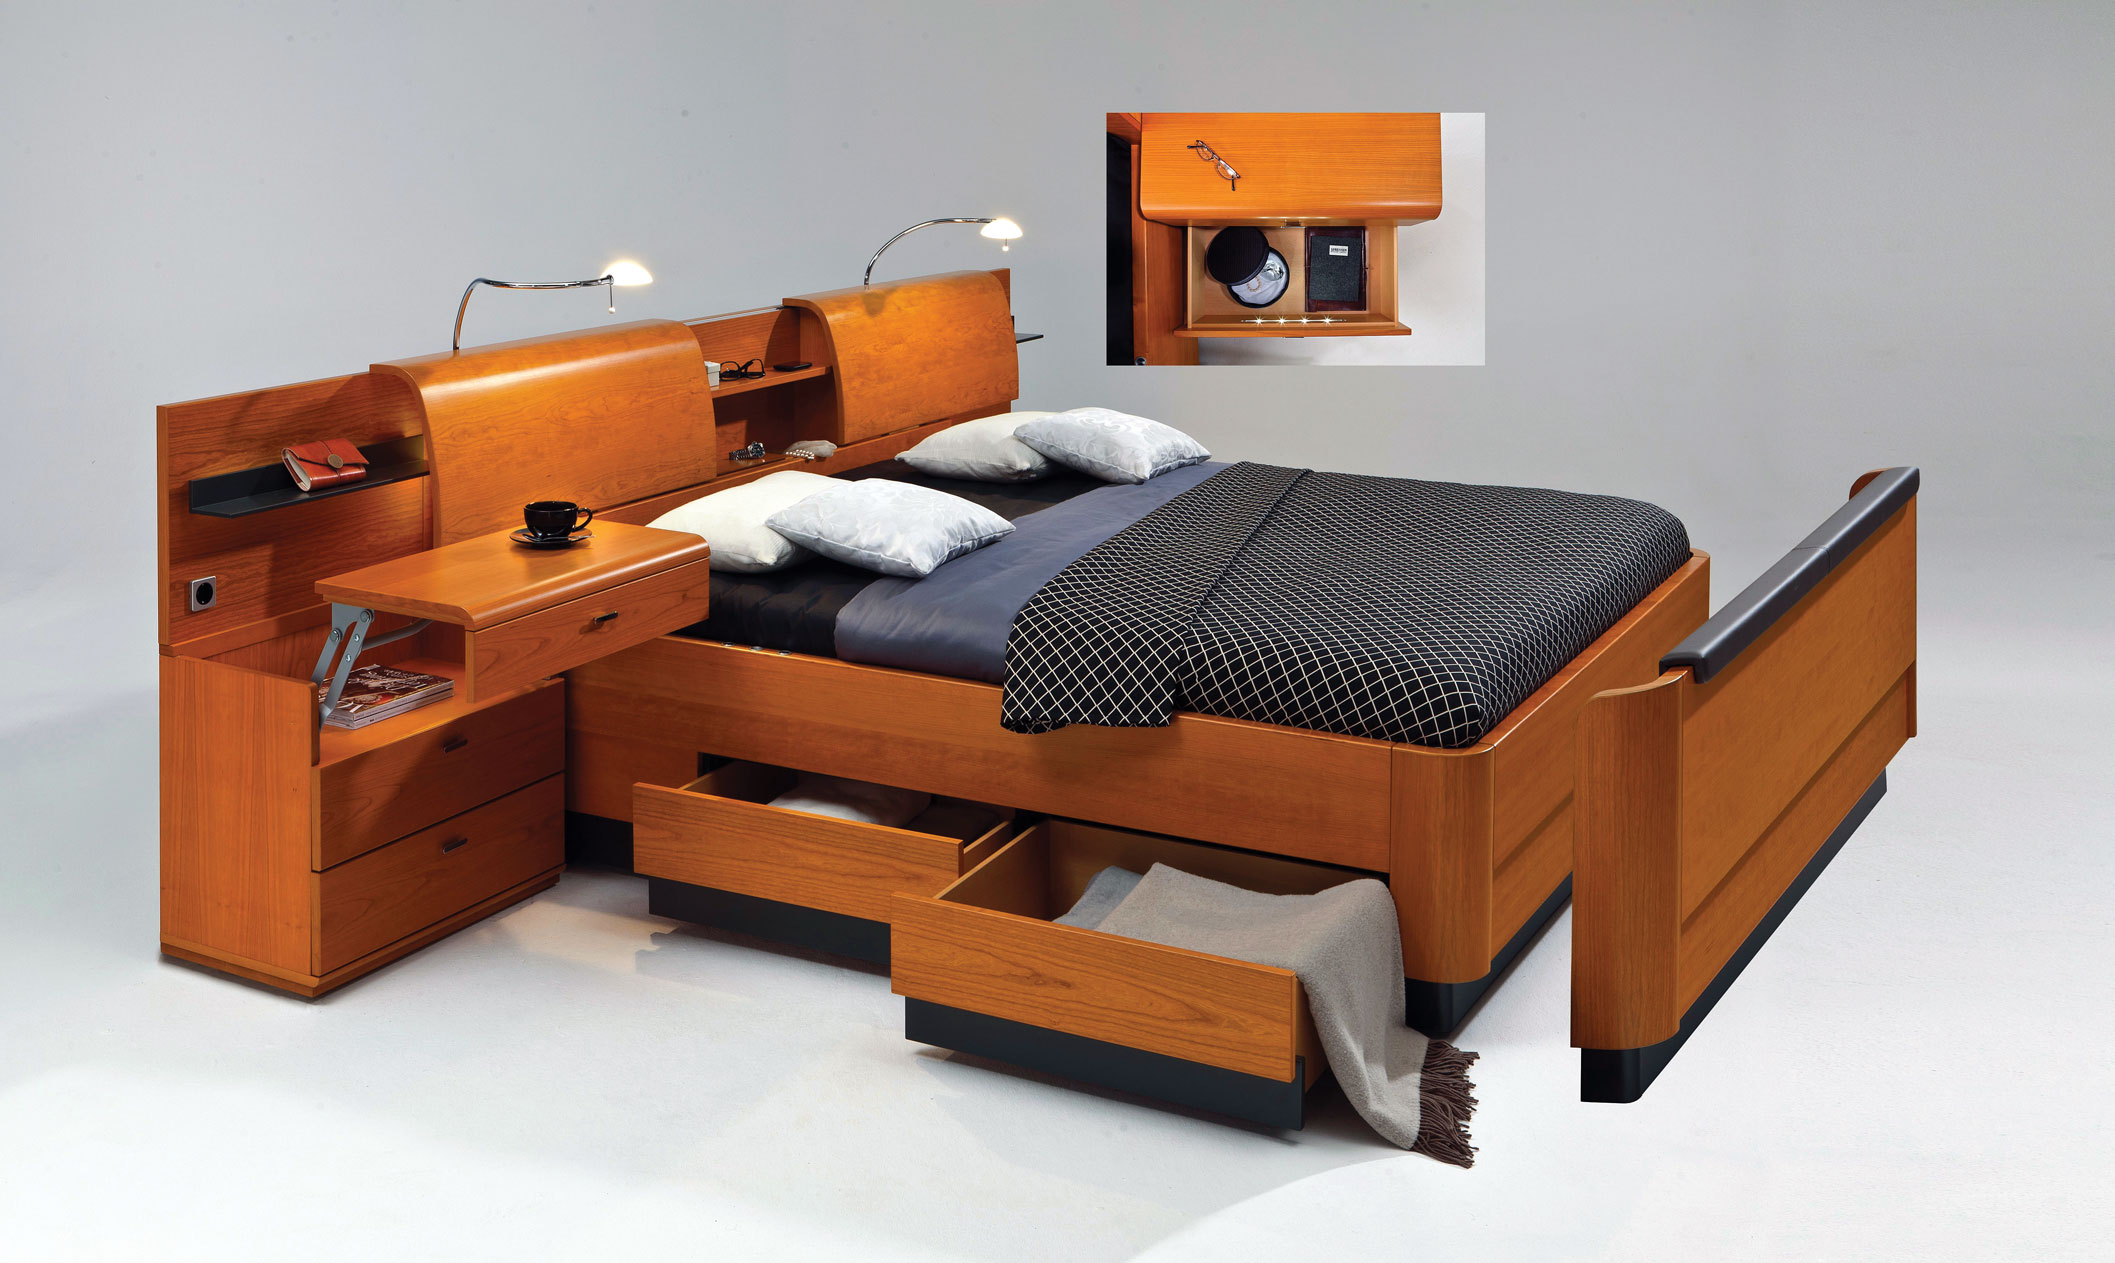 Multifunctional furniture for small spaces homesfeed for Home furniture